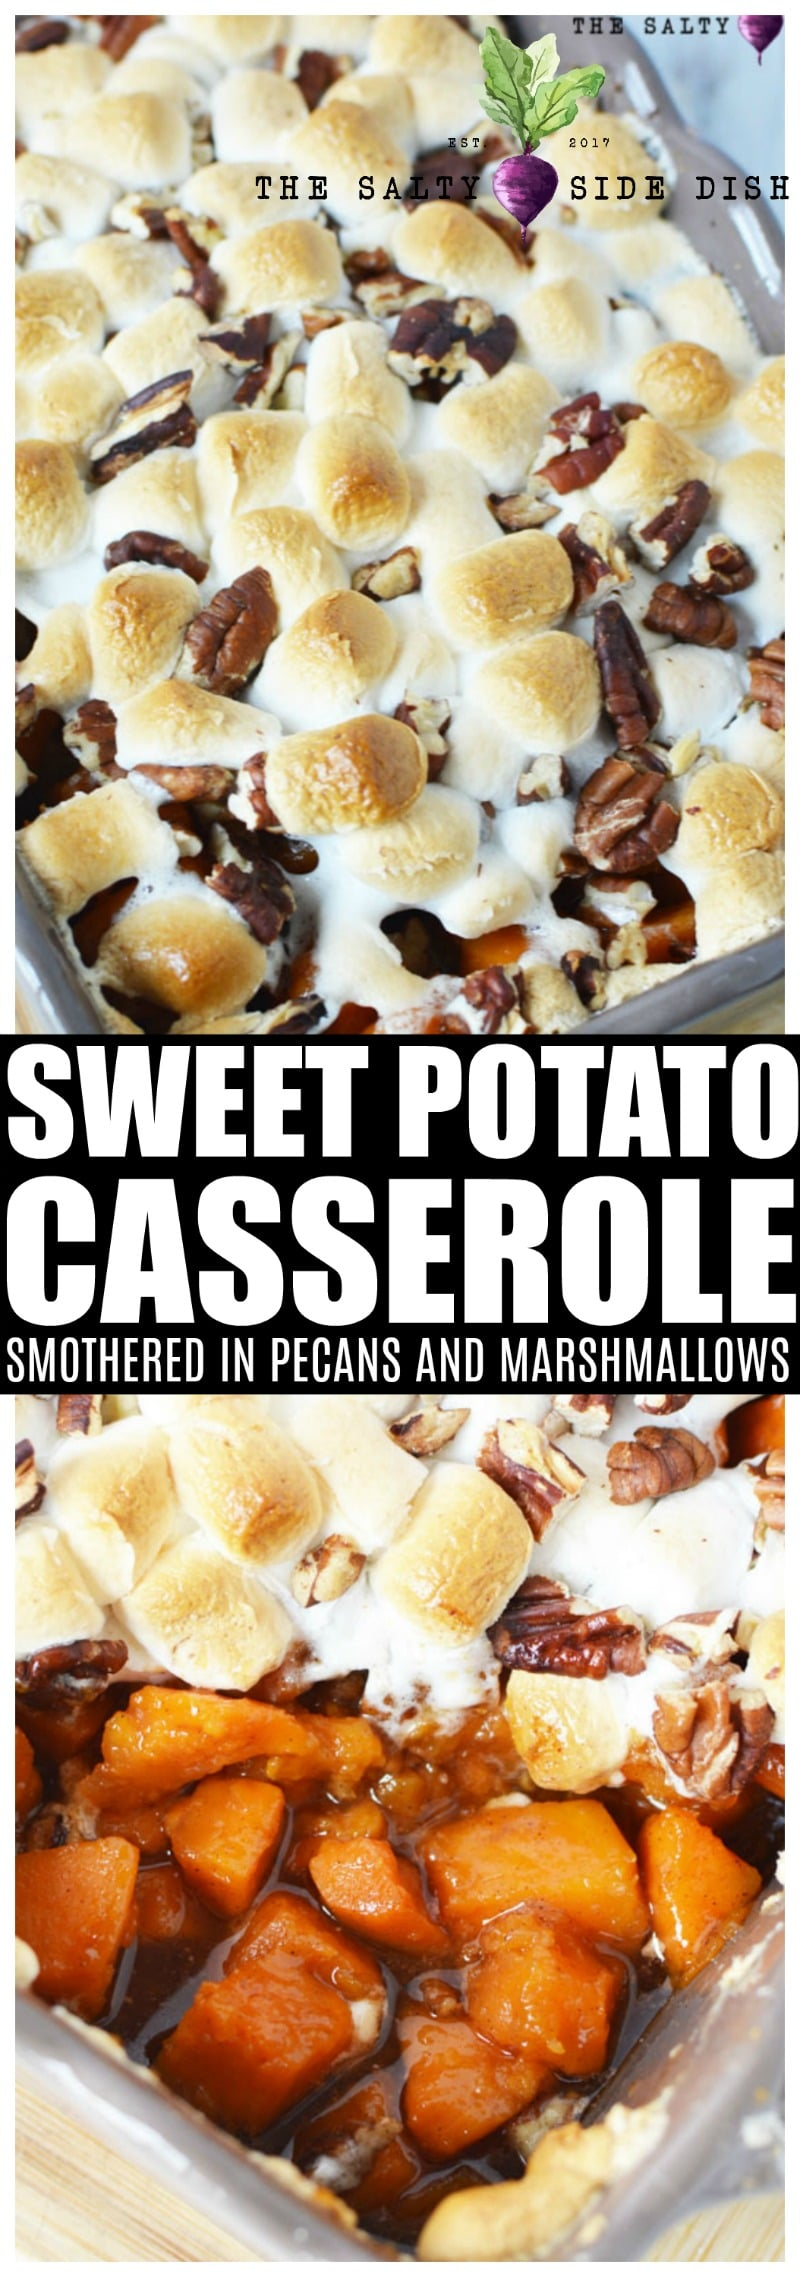 Sweet potato casserole with pecans | Southern Easy Sweet Potato Recipe with marshmallows #sweetpotatoes #casserole #sidedish